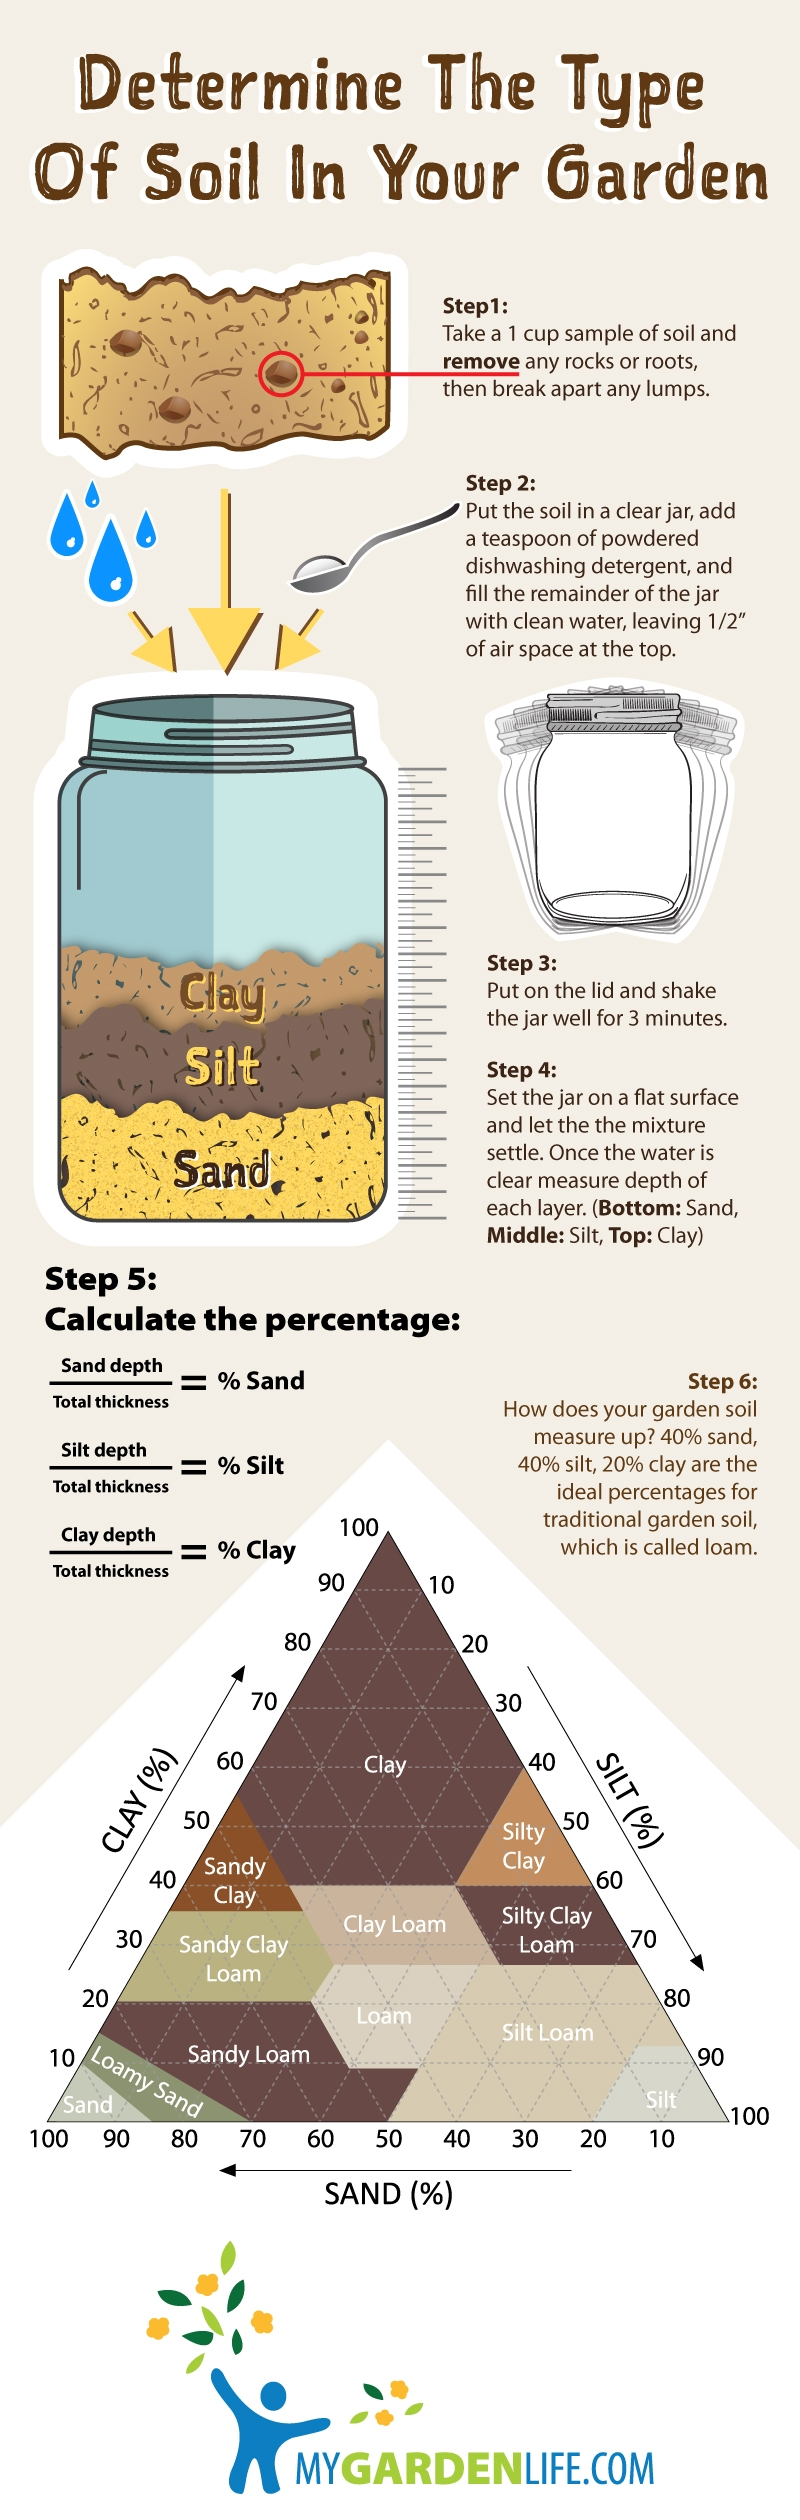 How to Evaluate Your Soil Type